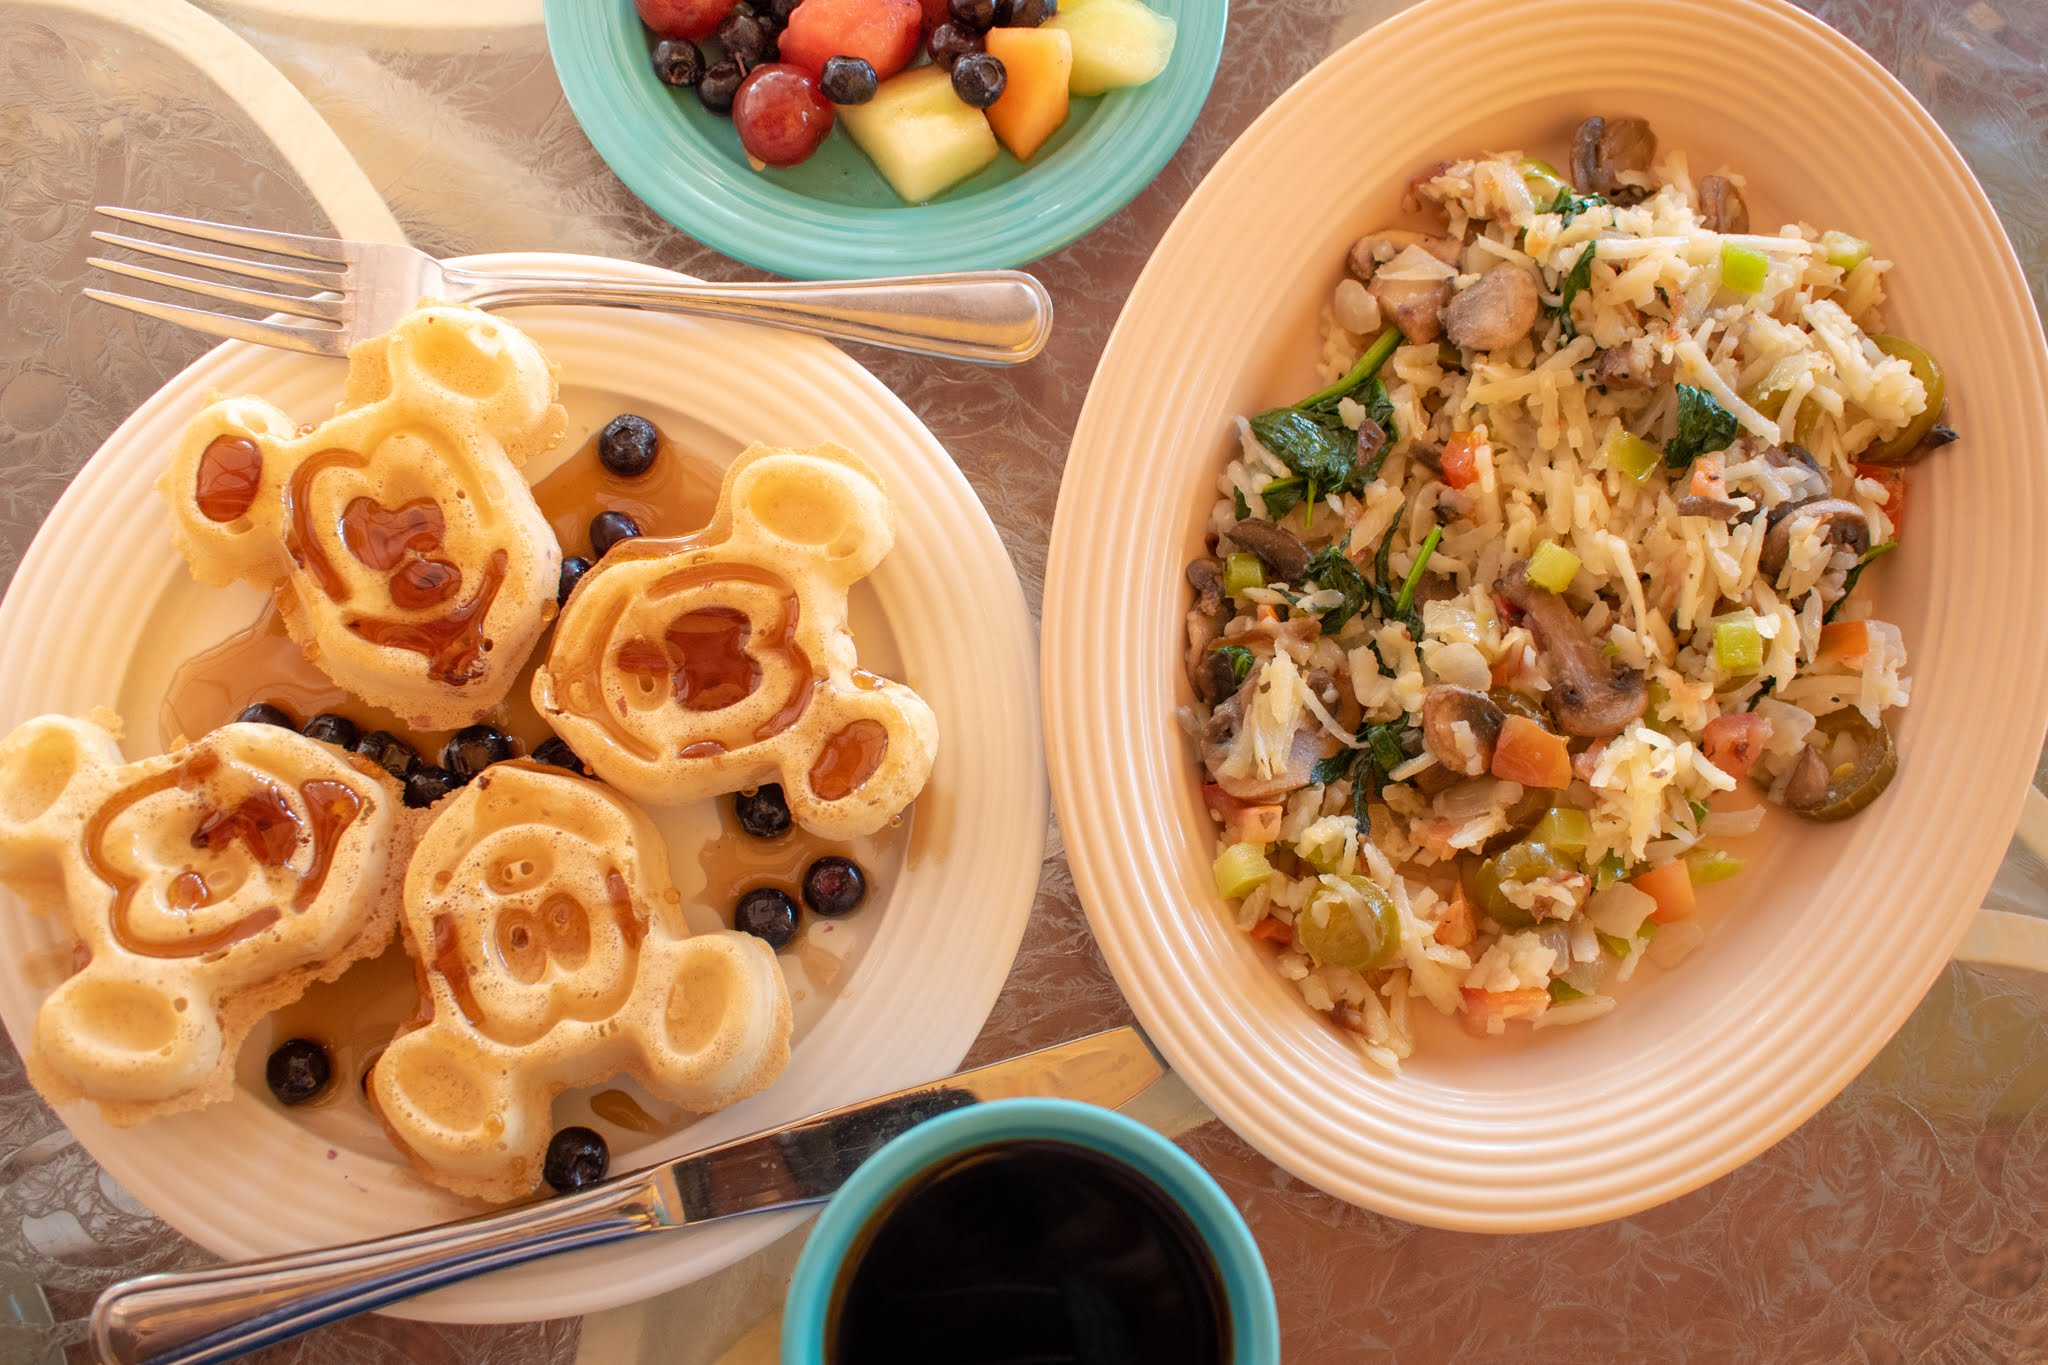 Uprooted-Traveler-Vegan-Disney-Land-veggie-hash-omelet-plaza-inn-vegan.jpg